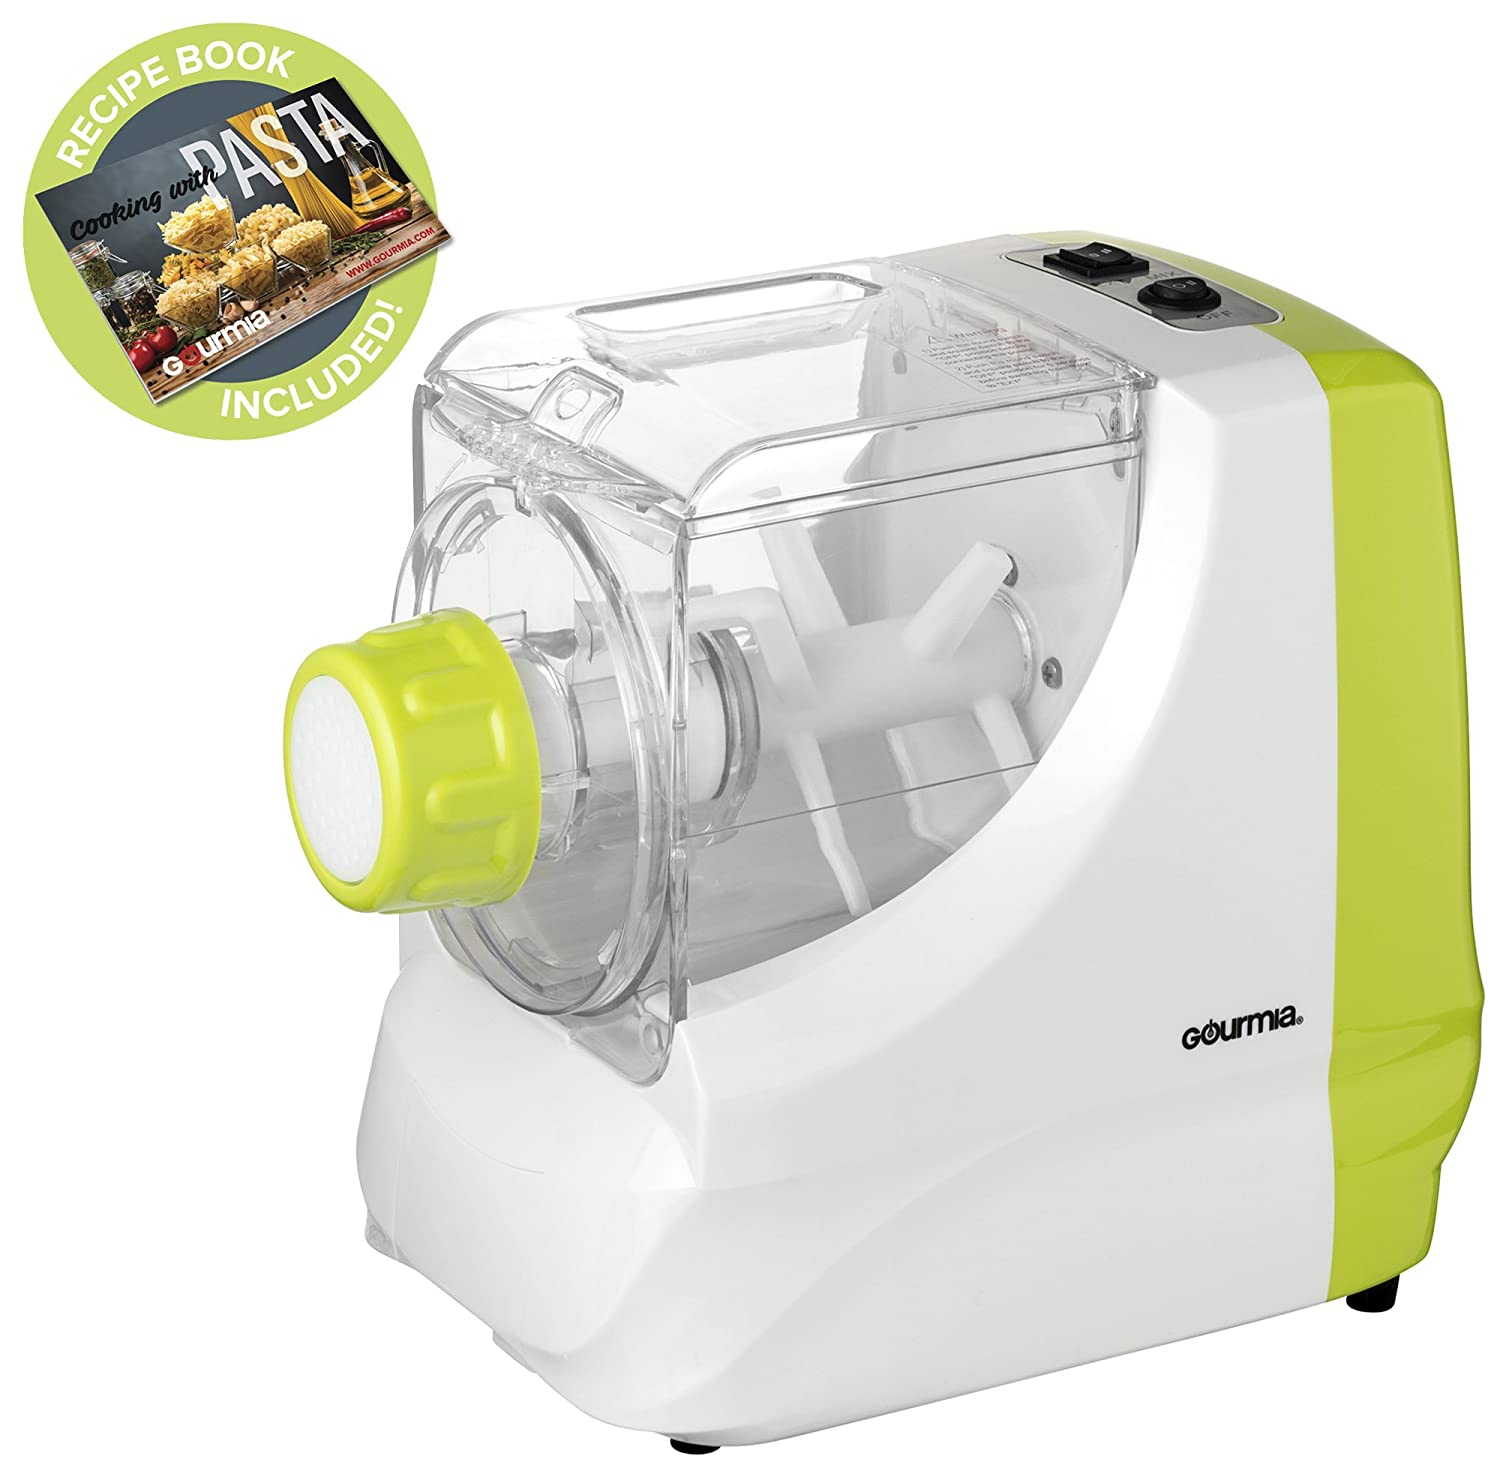 Gourmia GPM100 Electric PastaMazing Pasta Maker Includes 6 Discs and 2 Measuring Cups- Includes Free Recipe Book - 110V GPM-100